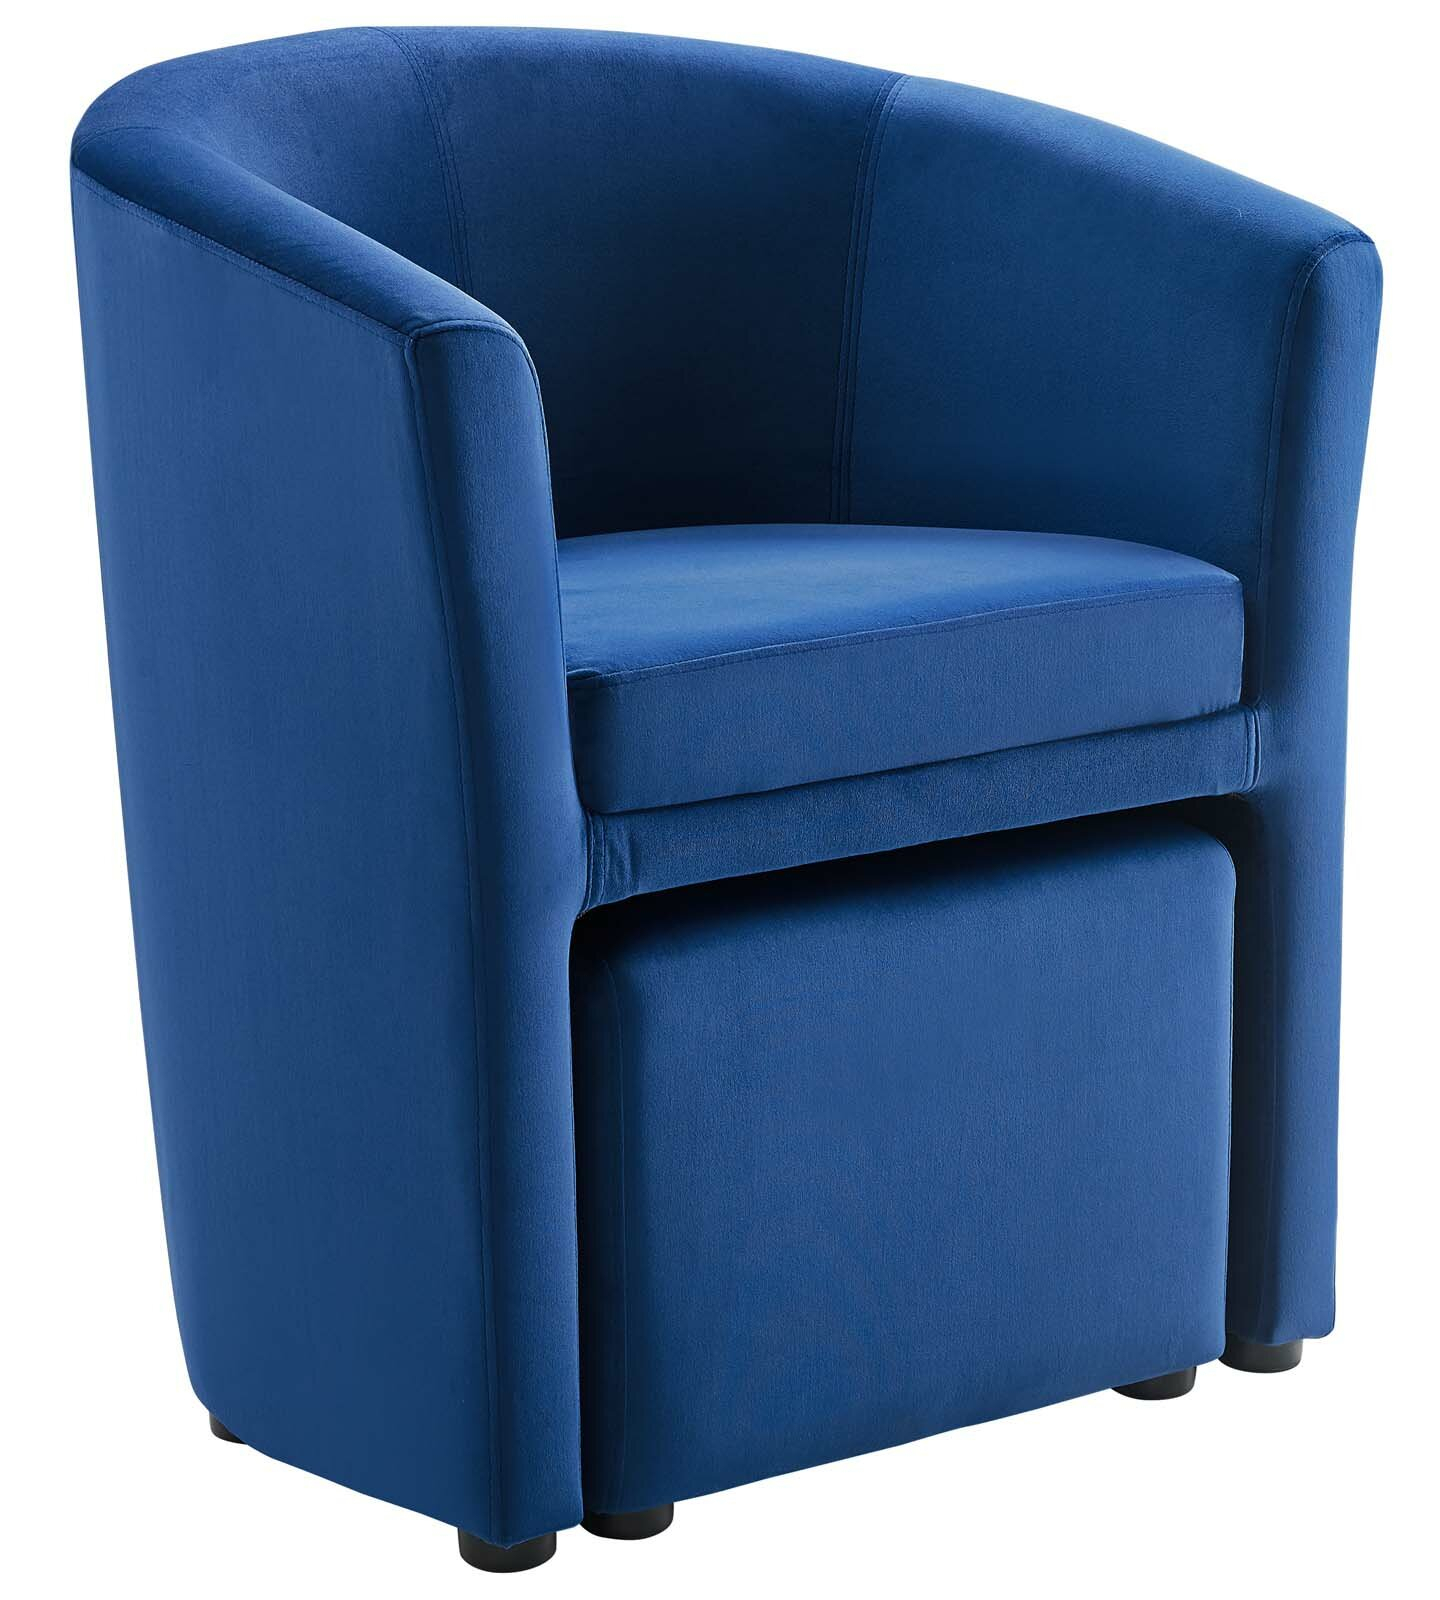 Hallsville Performance Velvet Armchair And Ottoman With Regard To Hallsville Performance Velvet Armchairs And Ottoman (View 2 of 15)